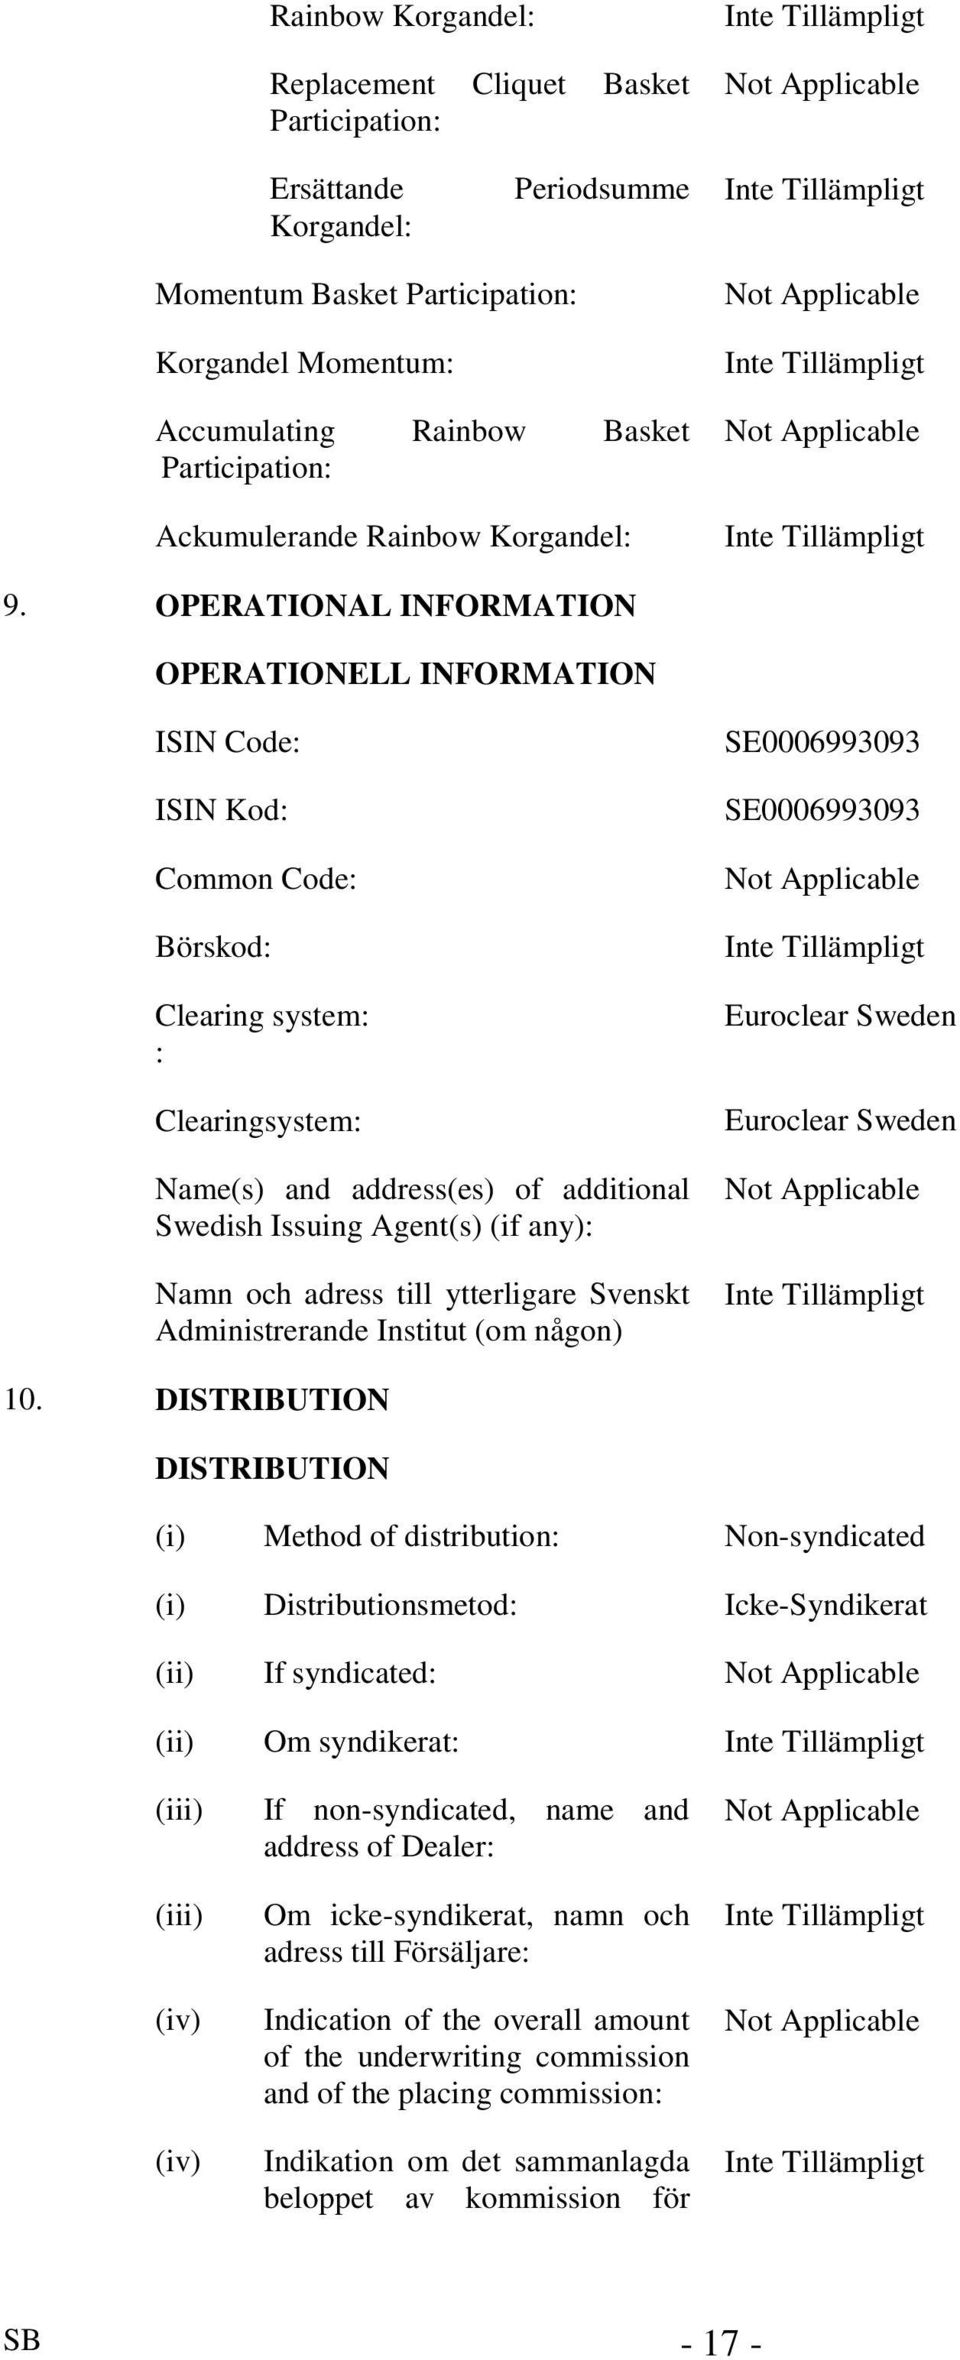 OPERATIONAL INFORMATION OPERATIONELL INFORMATION ISIN Code: ISIN Kod: Common Code: Börskod: Clearing system: : Clearingsystem: Name(s) and address(es) of additional Swedish Issuing Agent(s) (if any):